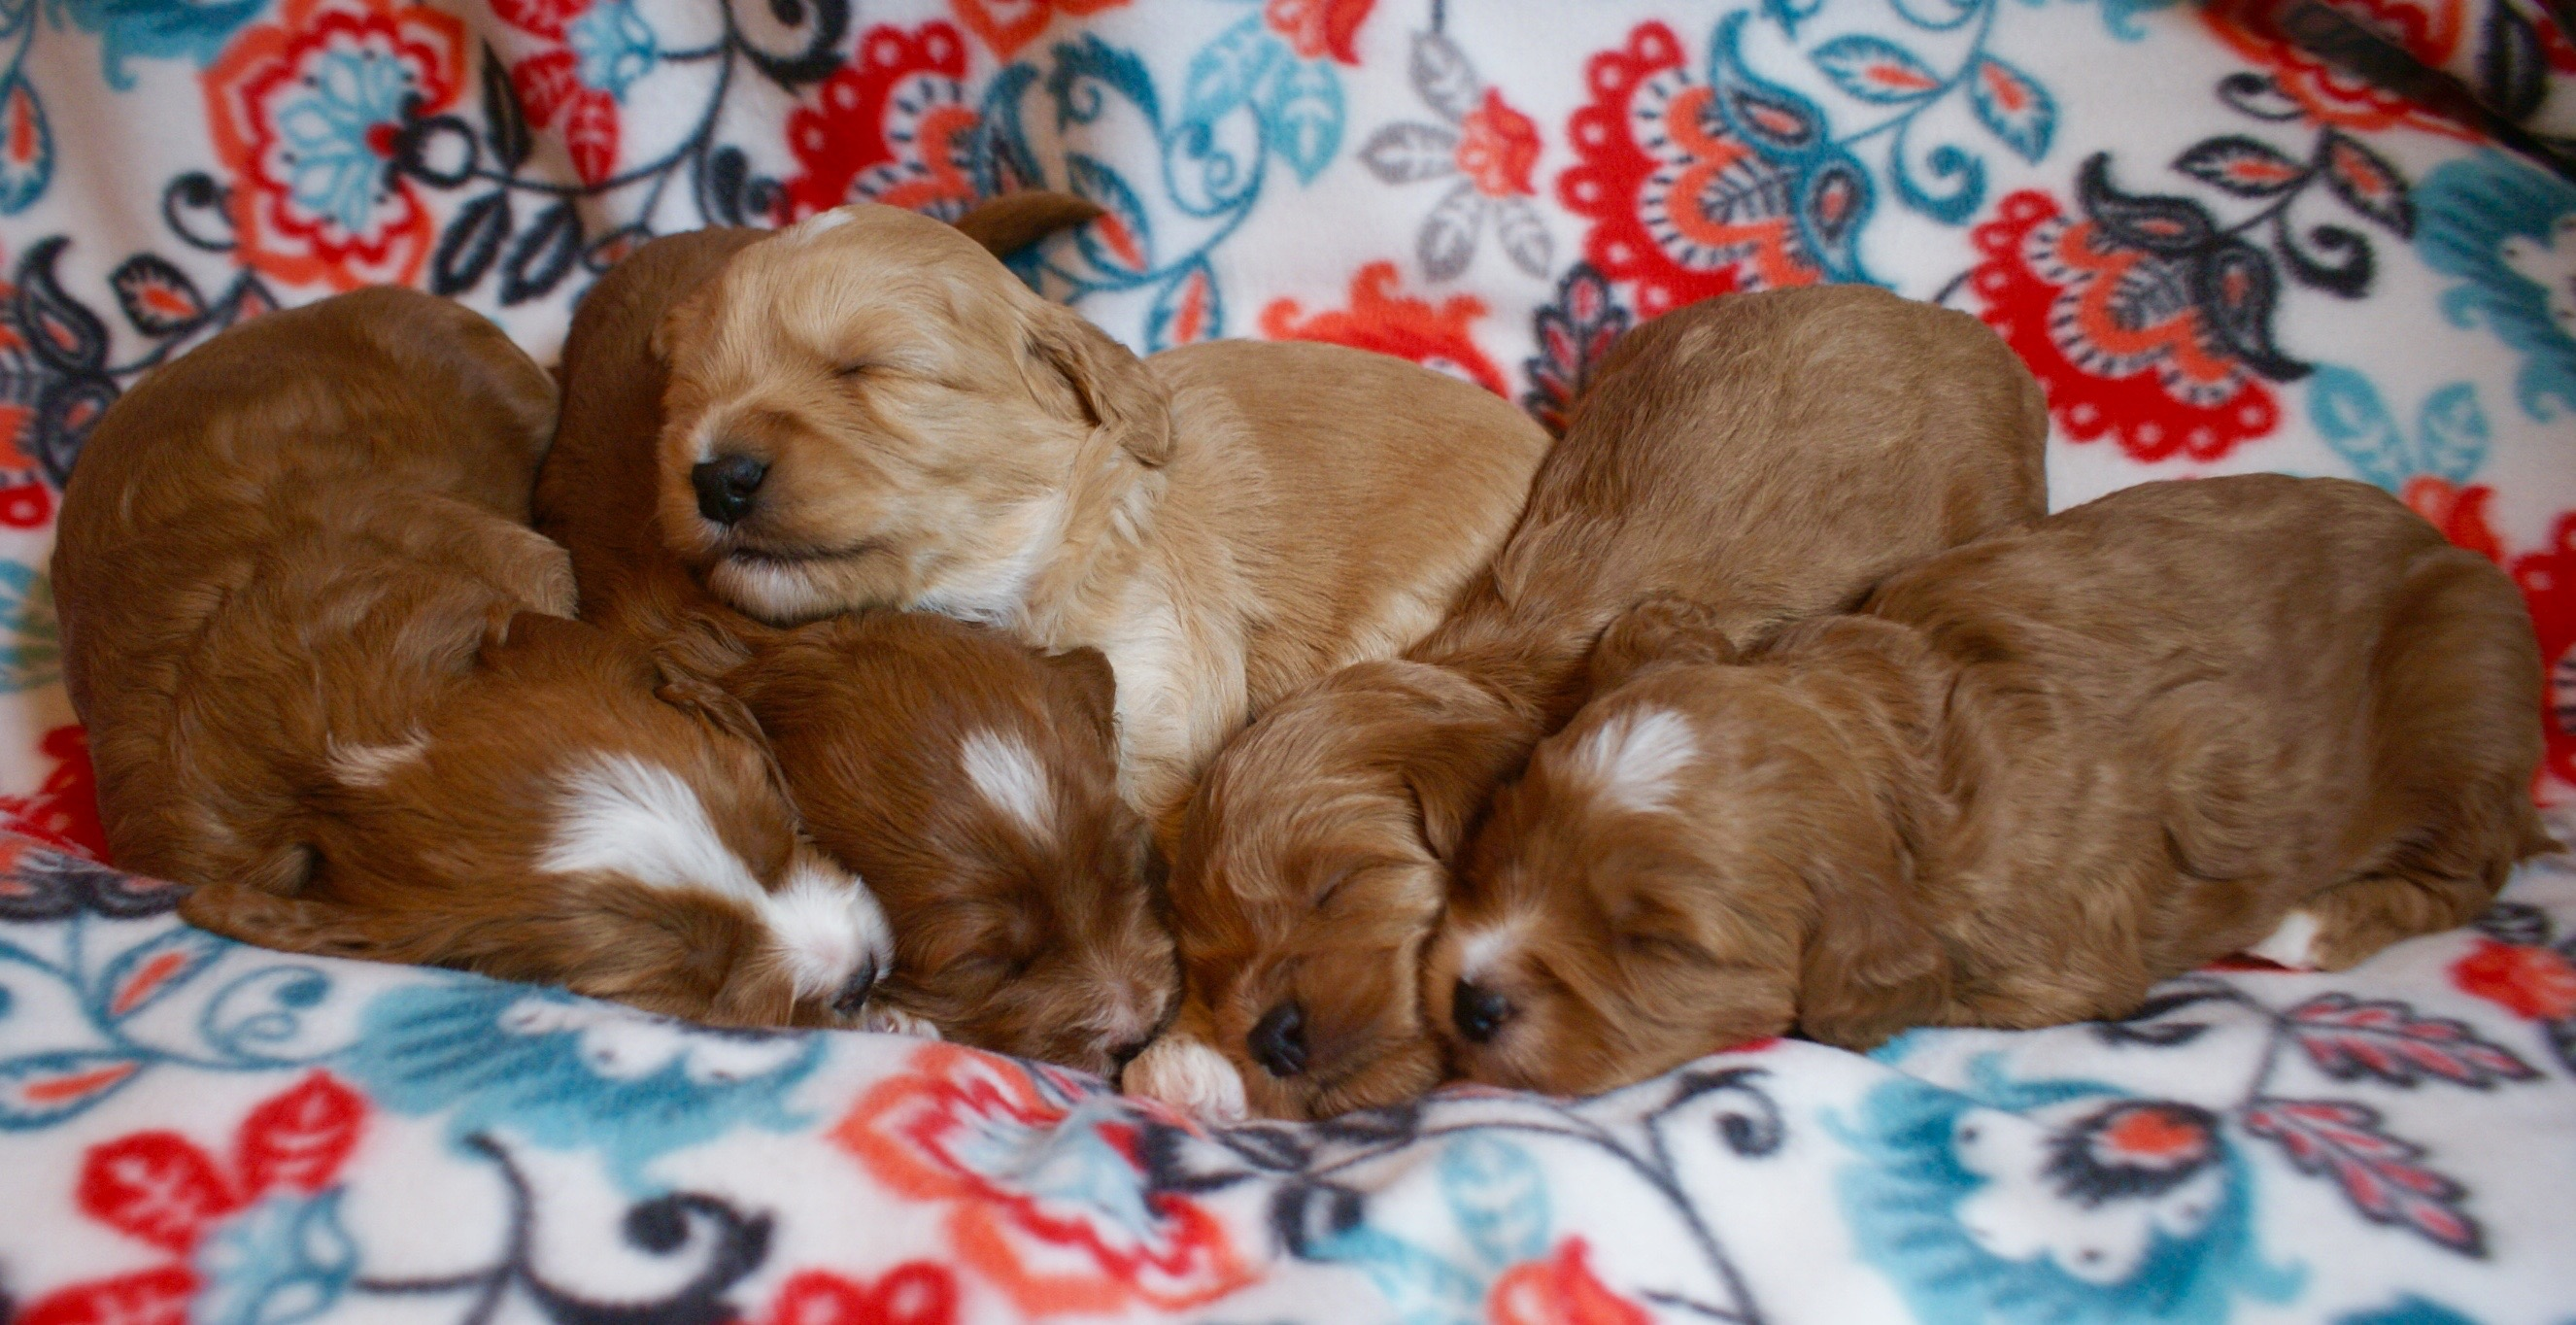 NorthStar Labradoodles – Available Australian Labradoodle